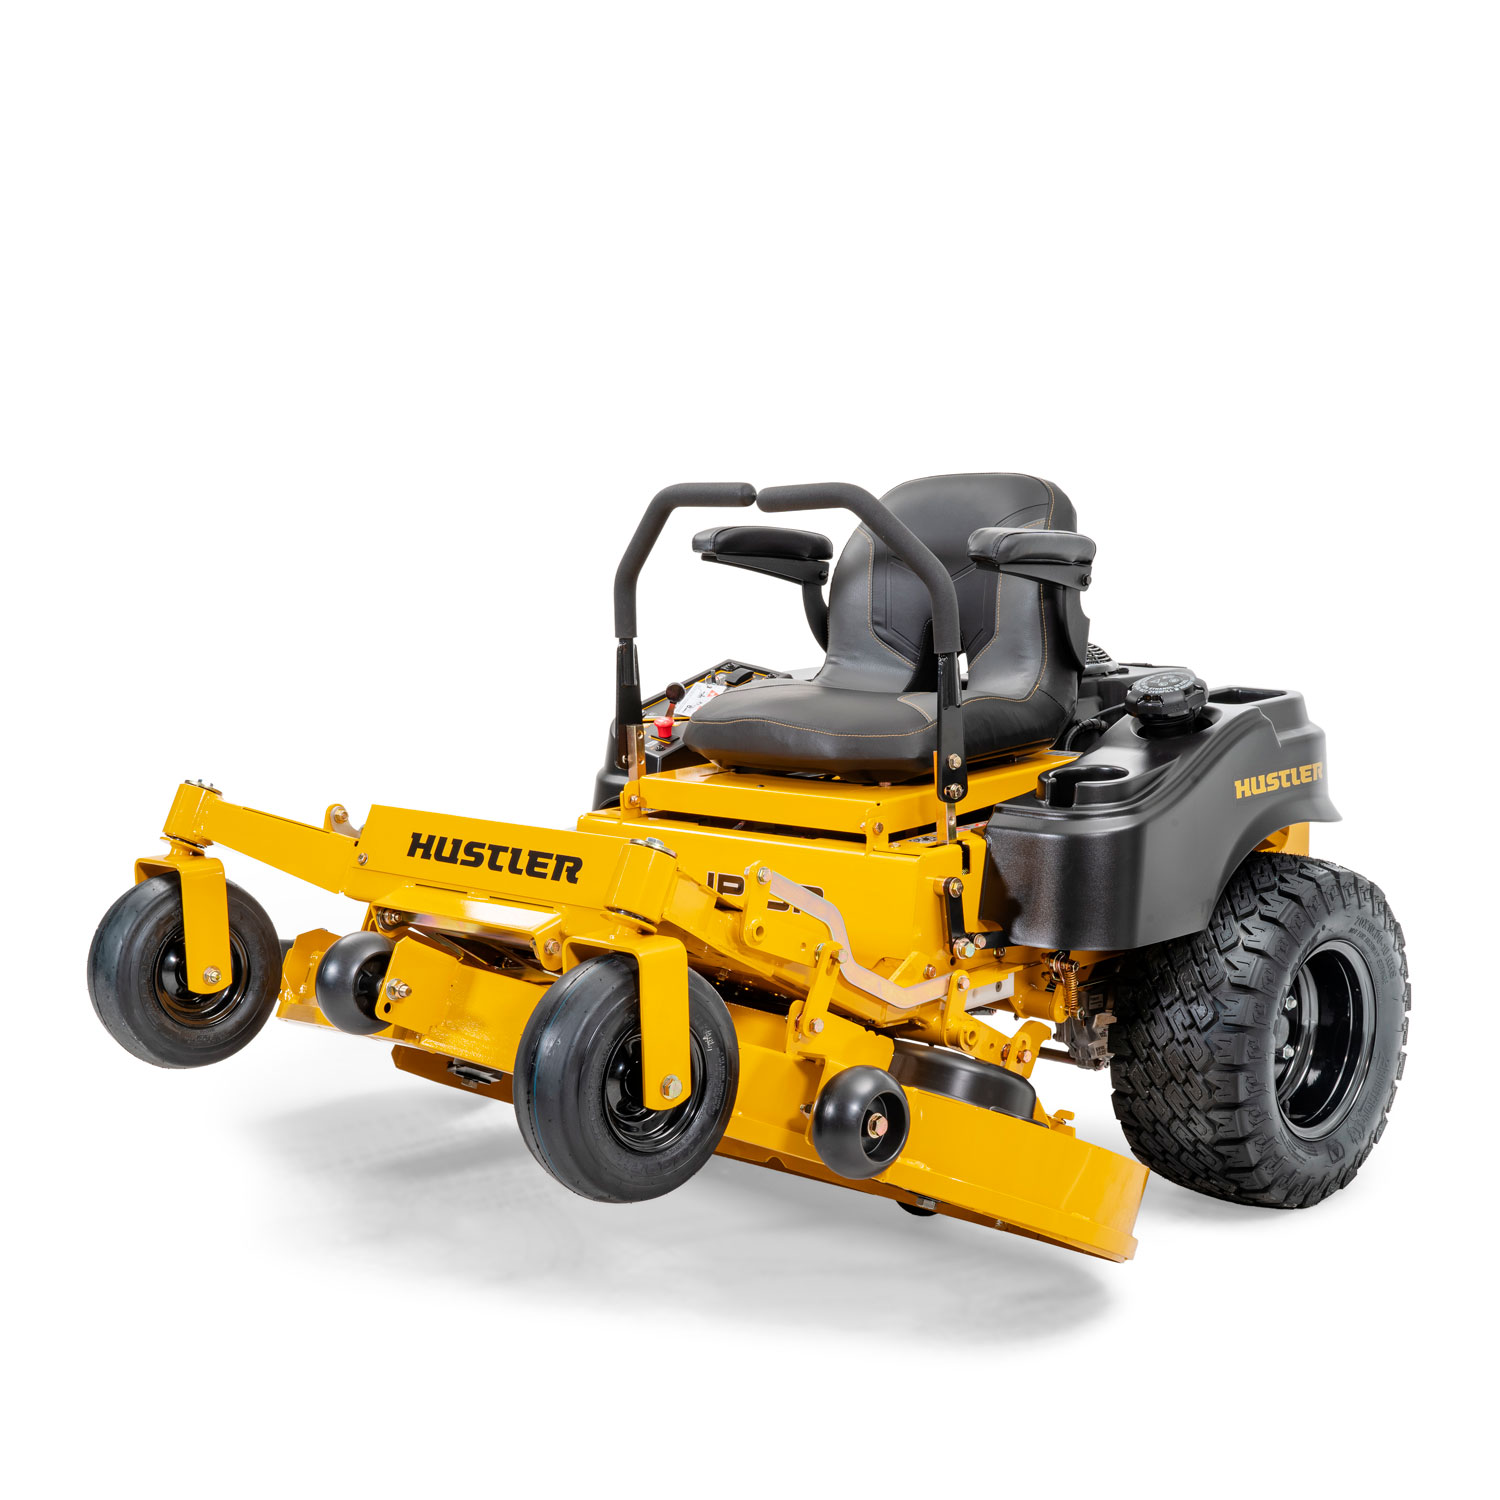 Image of the front of a yellow riding mower with the deck partially turned vertical and underside of the deck almost visible